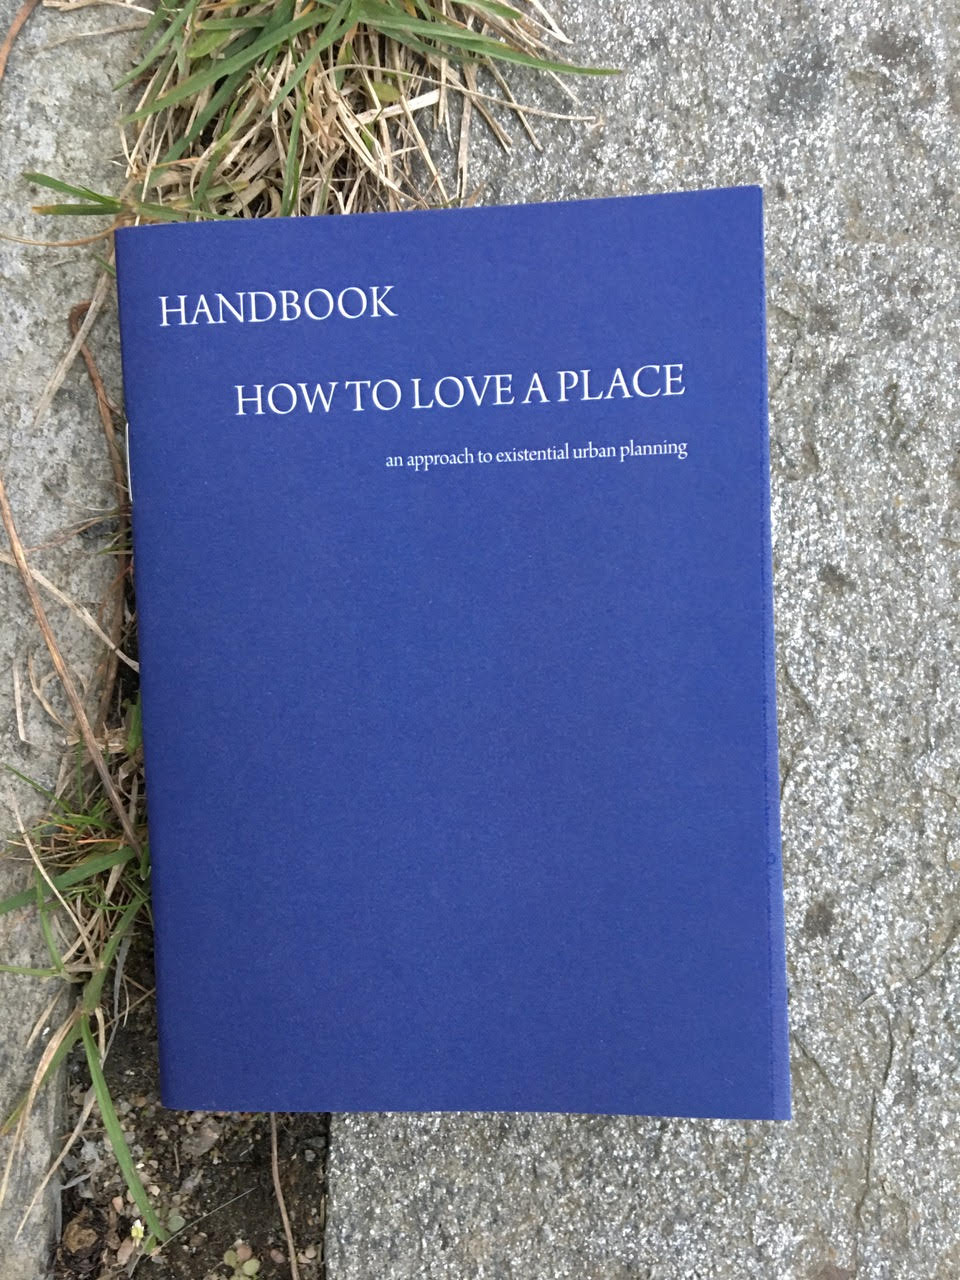 Handbook How to love a place